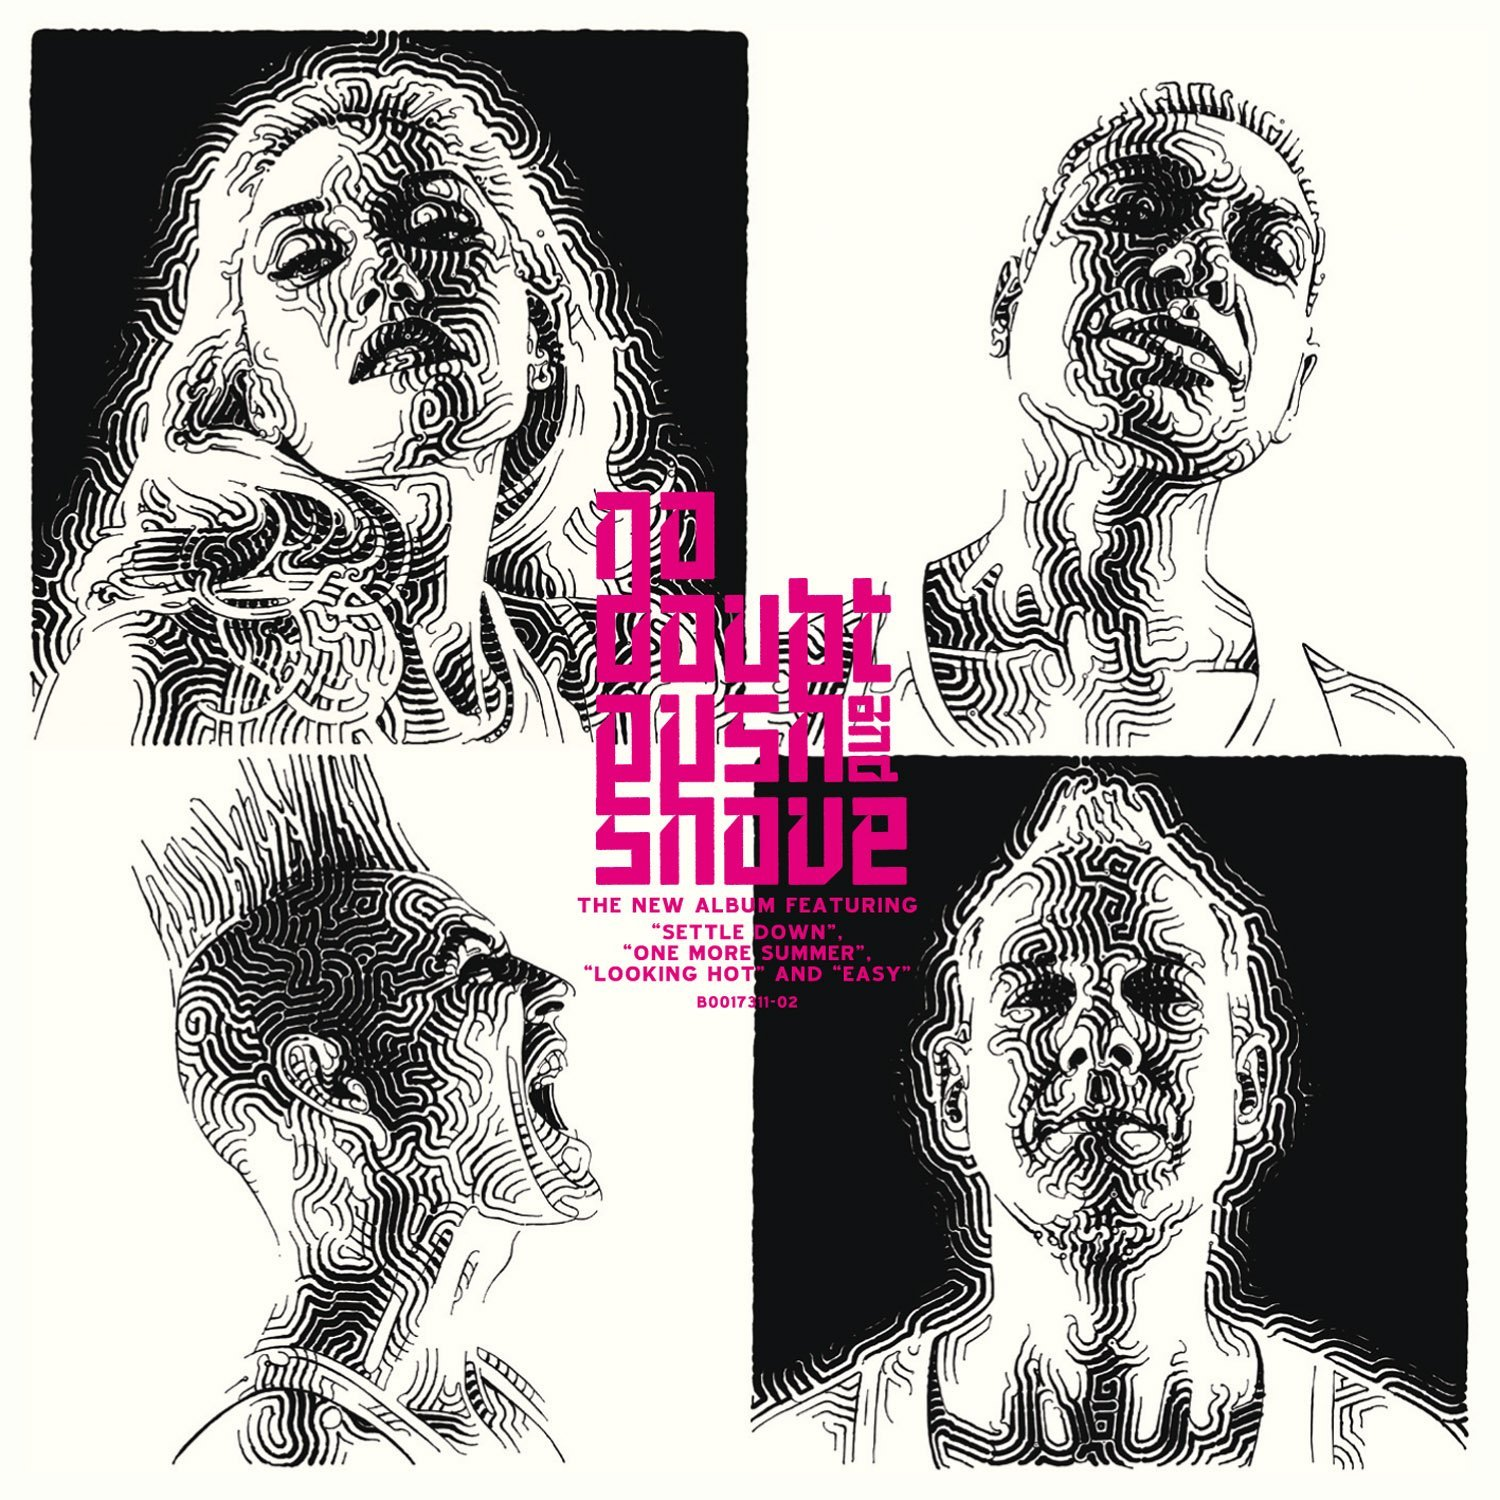 No Doubt, Push and Shove | Album Review